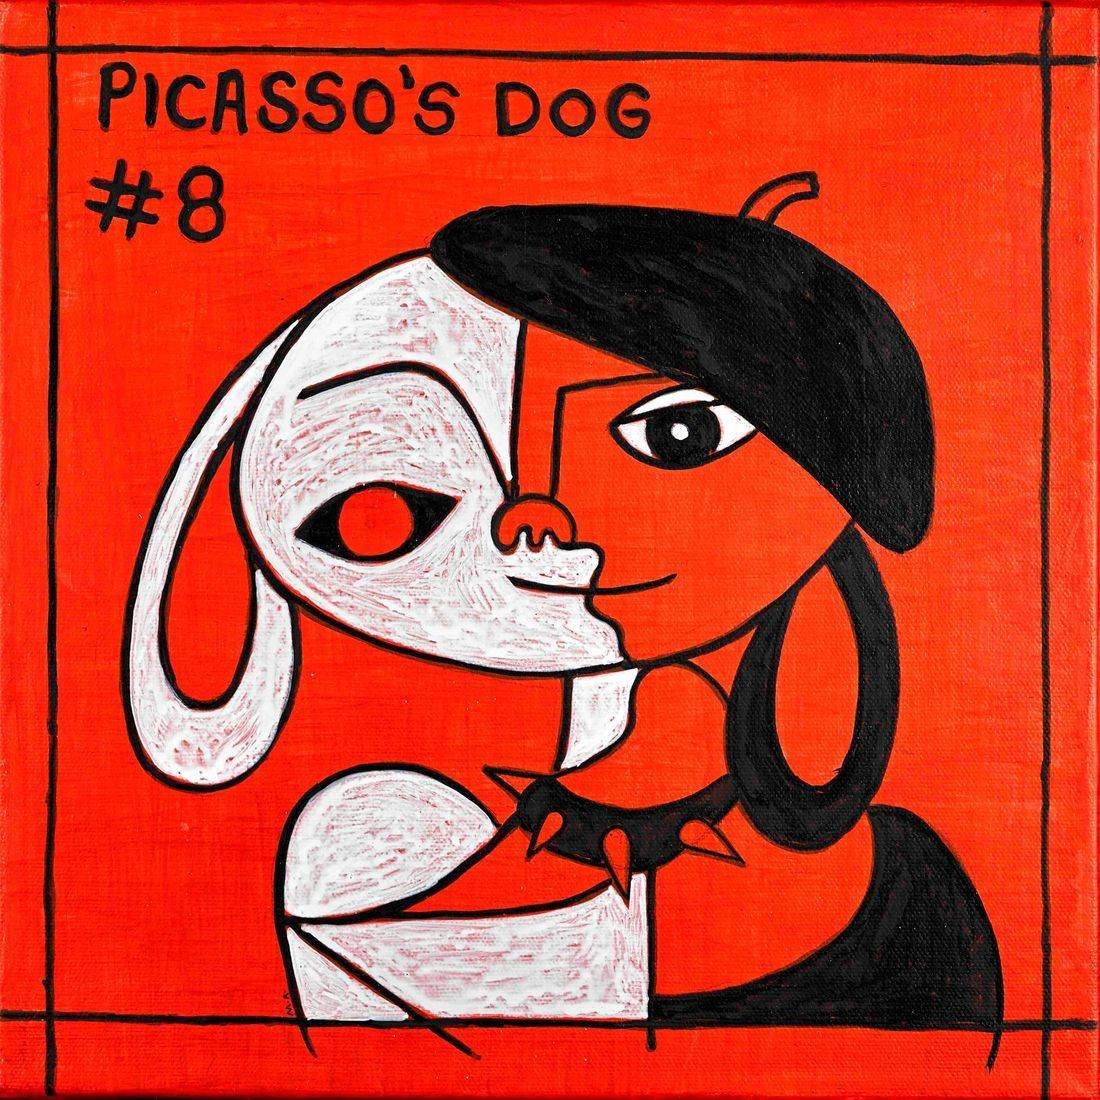 Picasso, Picasso's Dogs, Artists, Artists' Dogs, Beret, Picasso's Style of Dress, Anthropomorphism, Studded Dog Collar